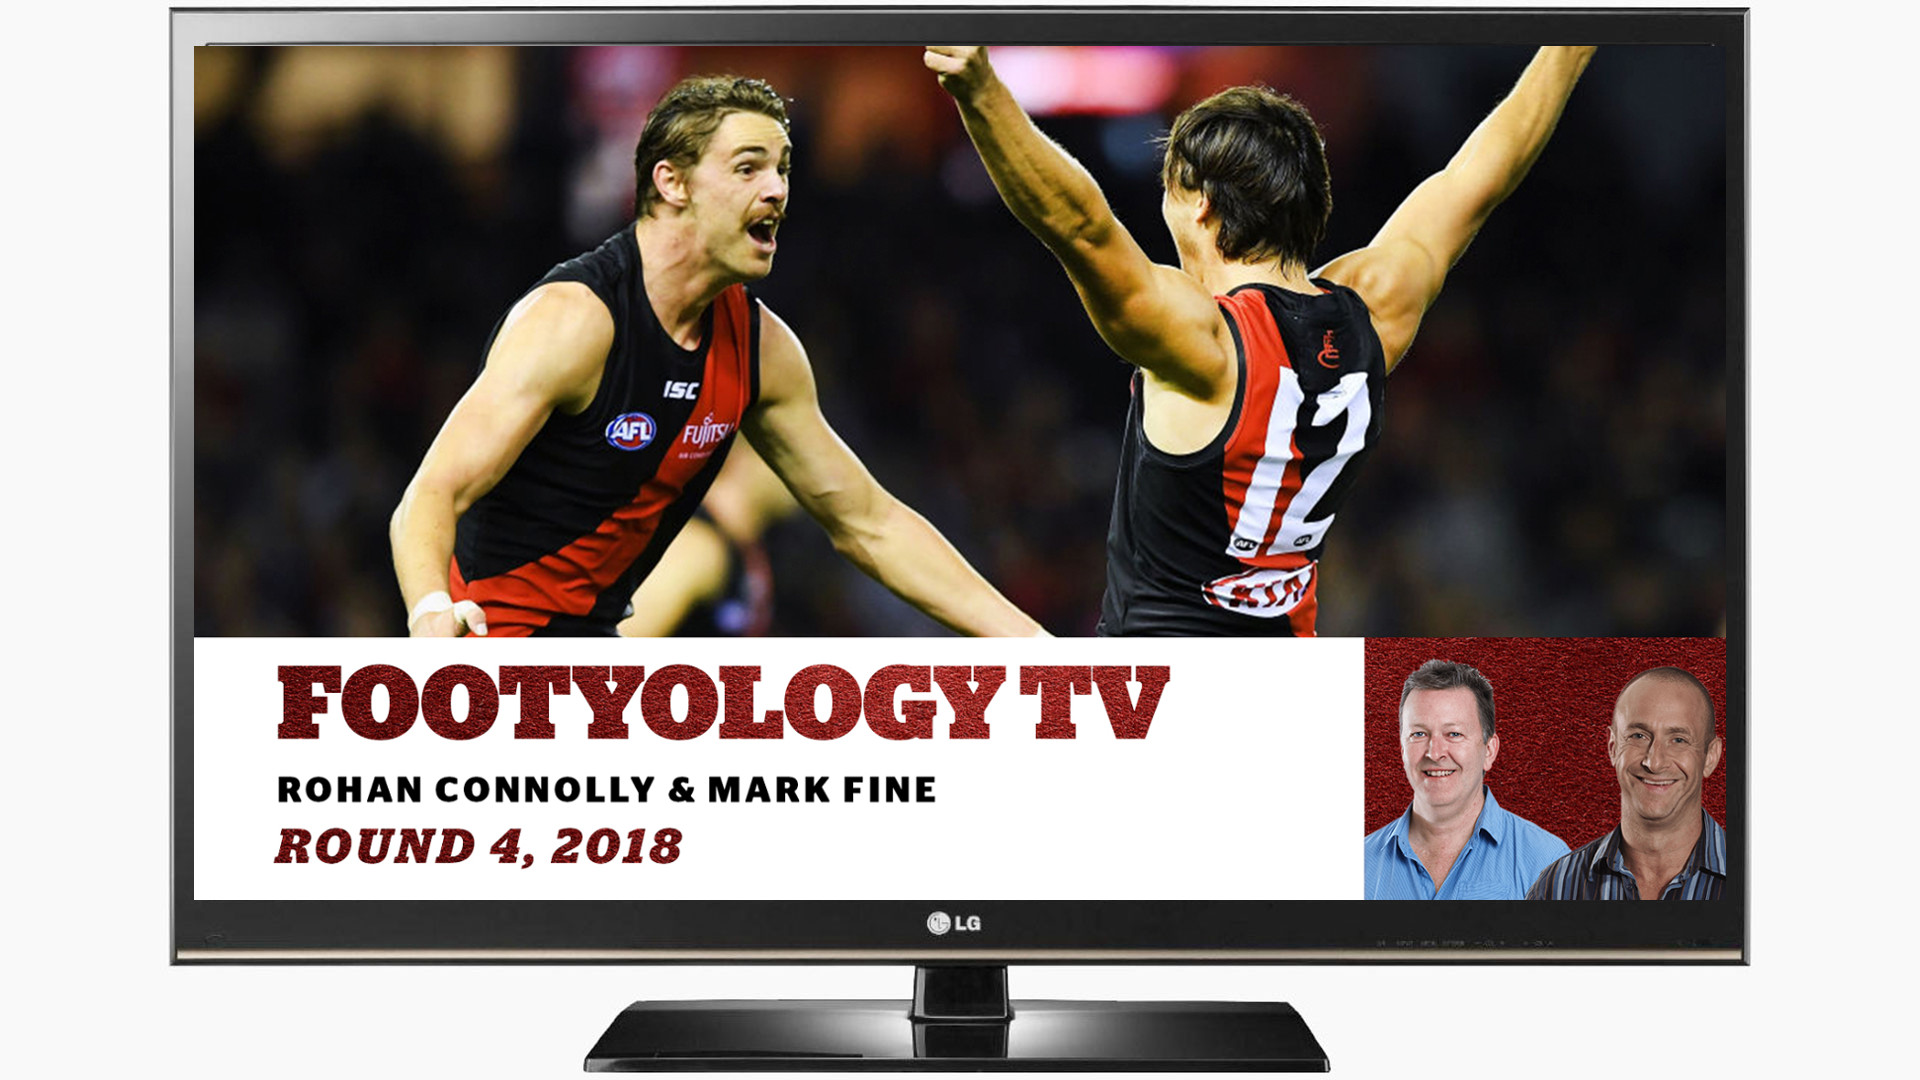 Footyology TV - Sunday 15th April 2018